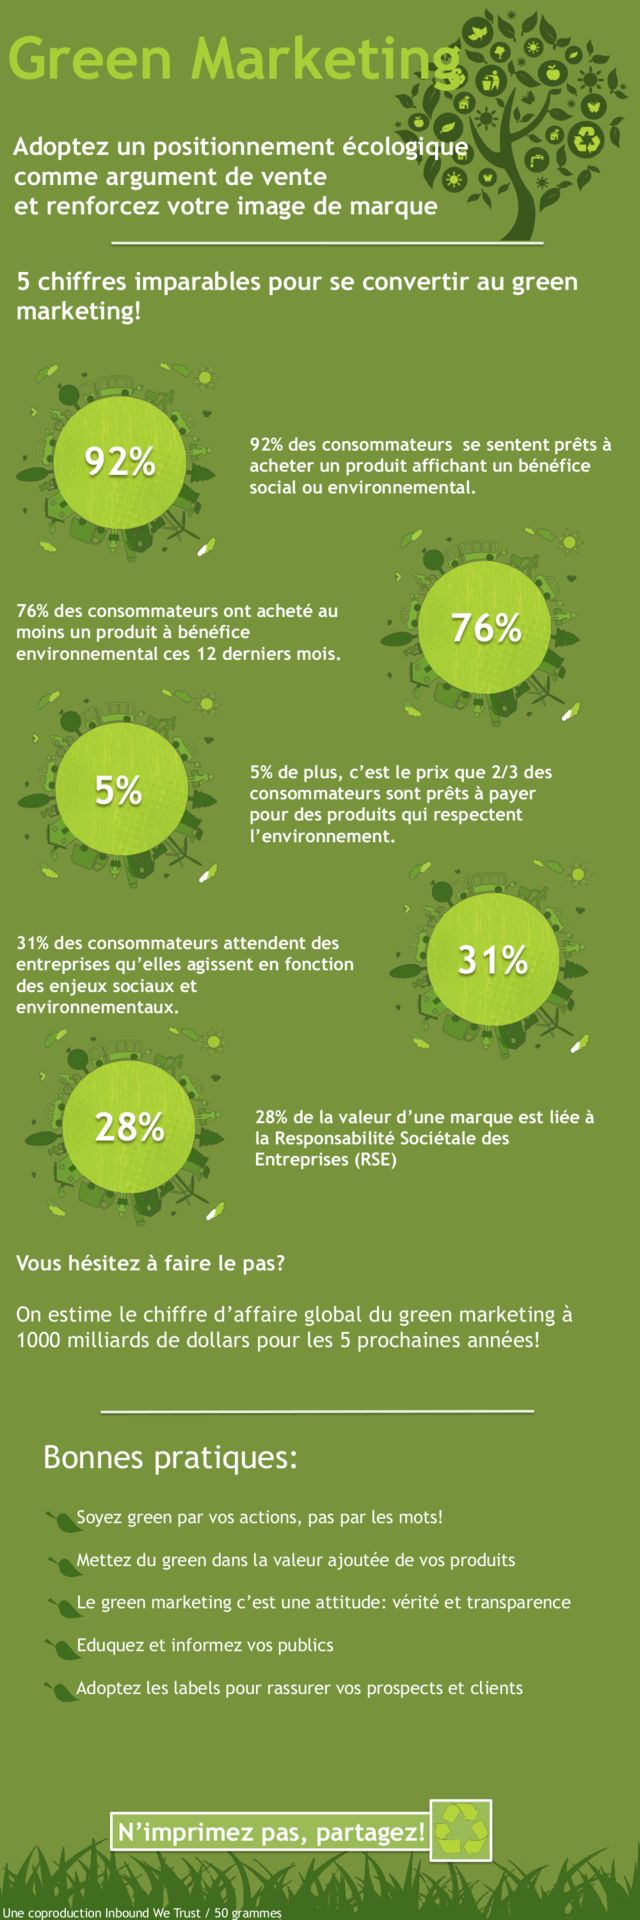 infographie sur le marketing vert